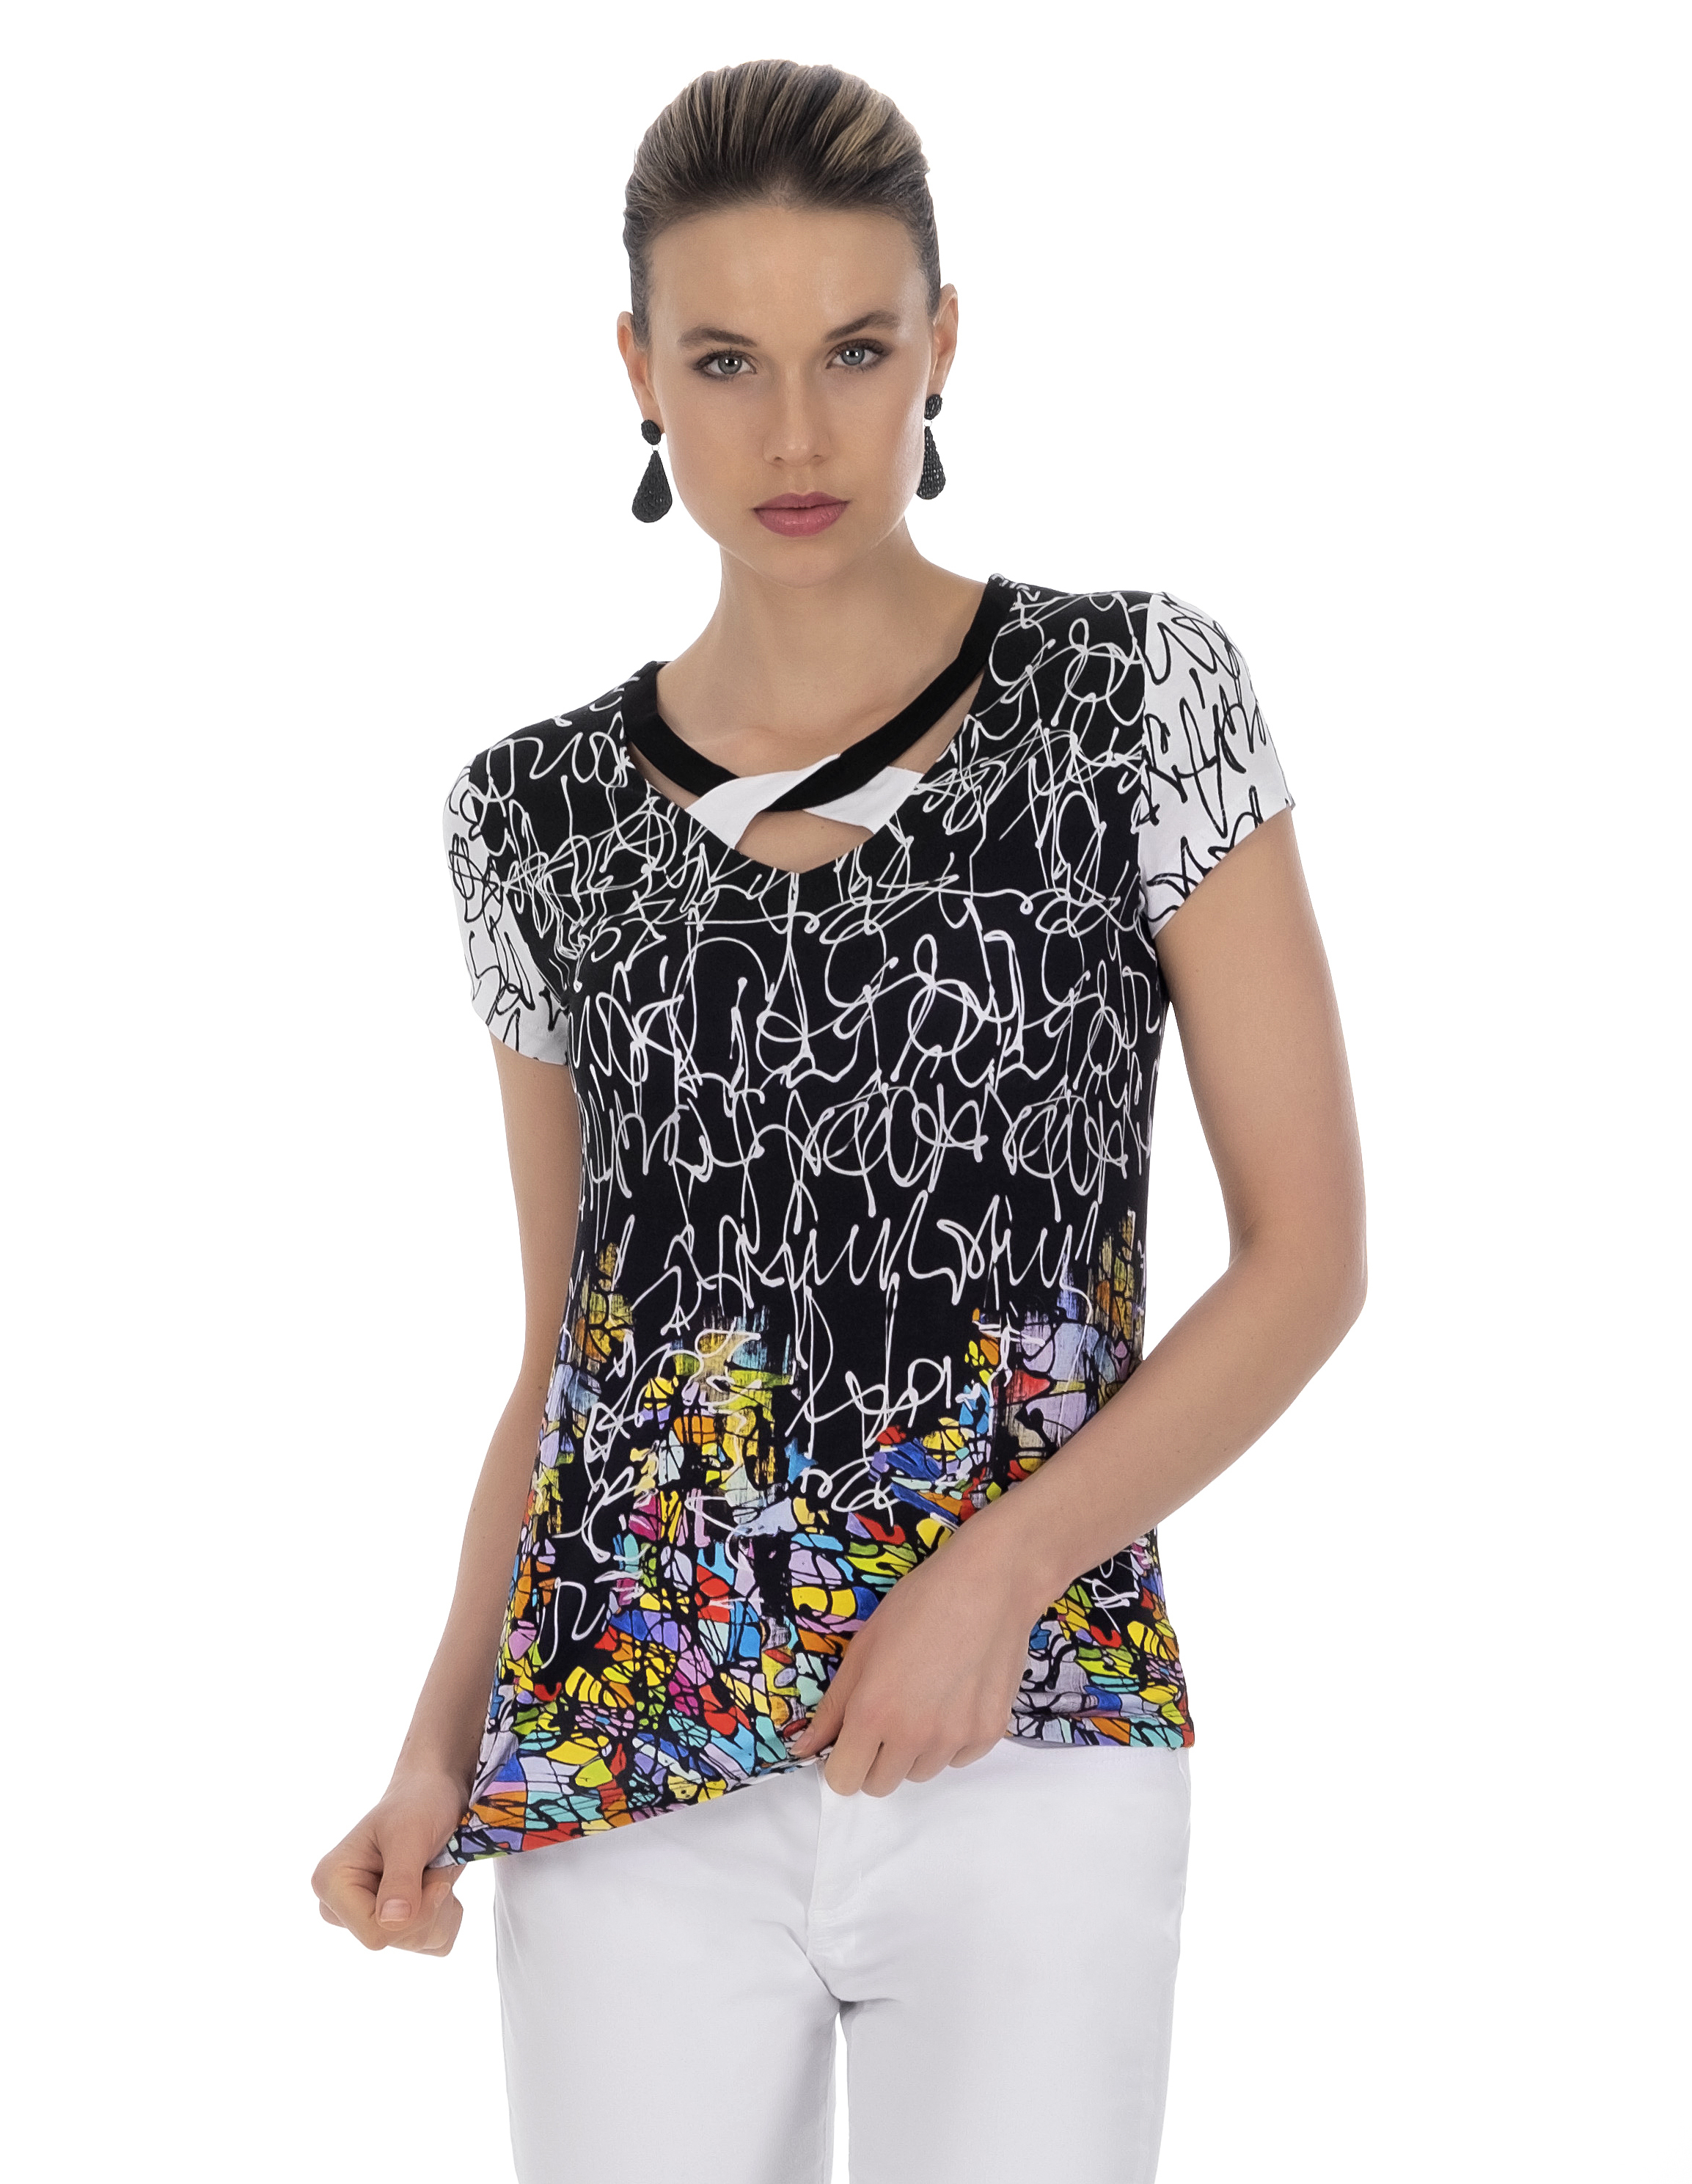 Simply Art Dolcezza: Black Board Abstract Art T-Shirt (2 Left!) Dolcezza_SimplyArt_21642